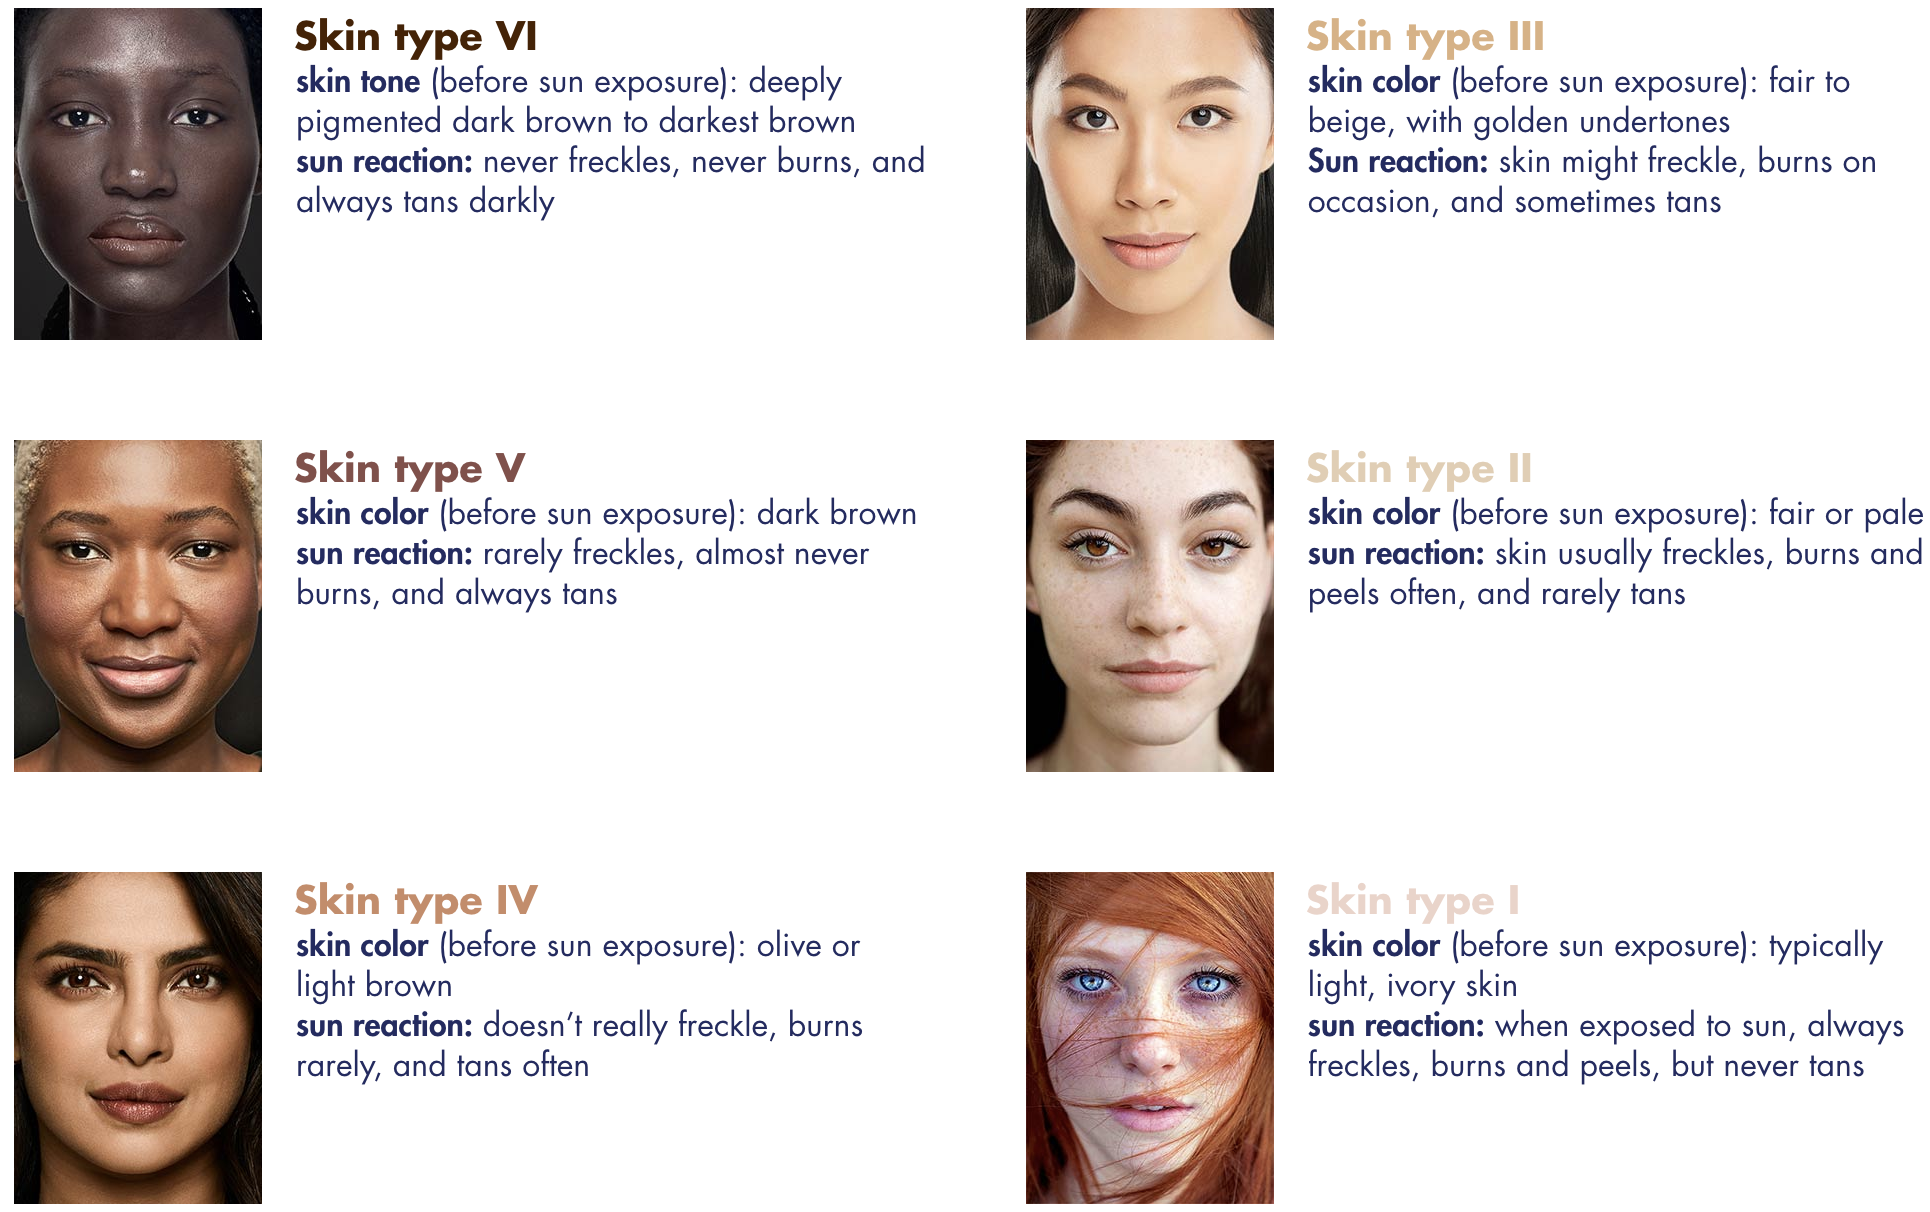 Fitzpatrick Skin Types.png